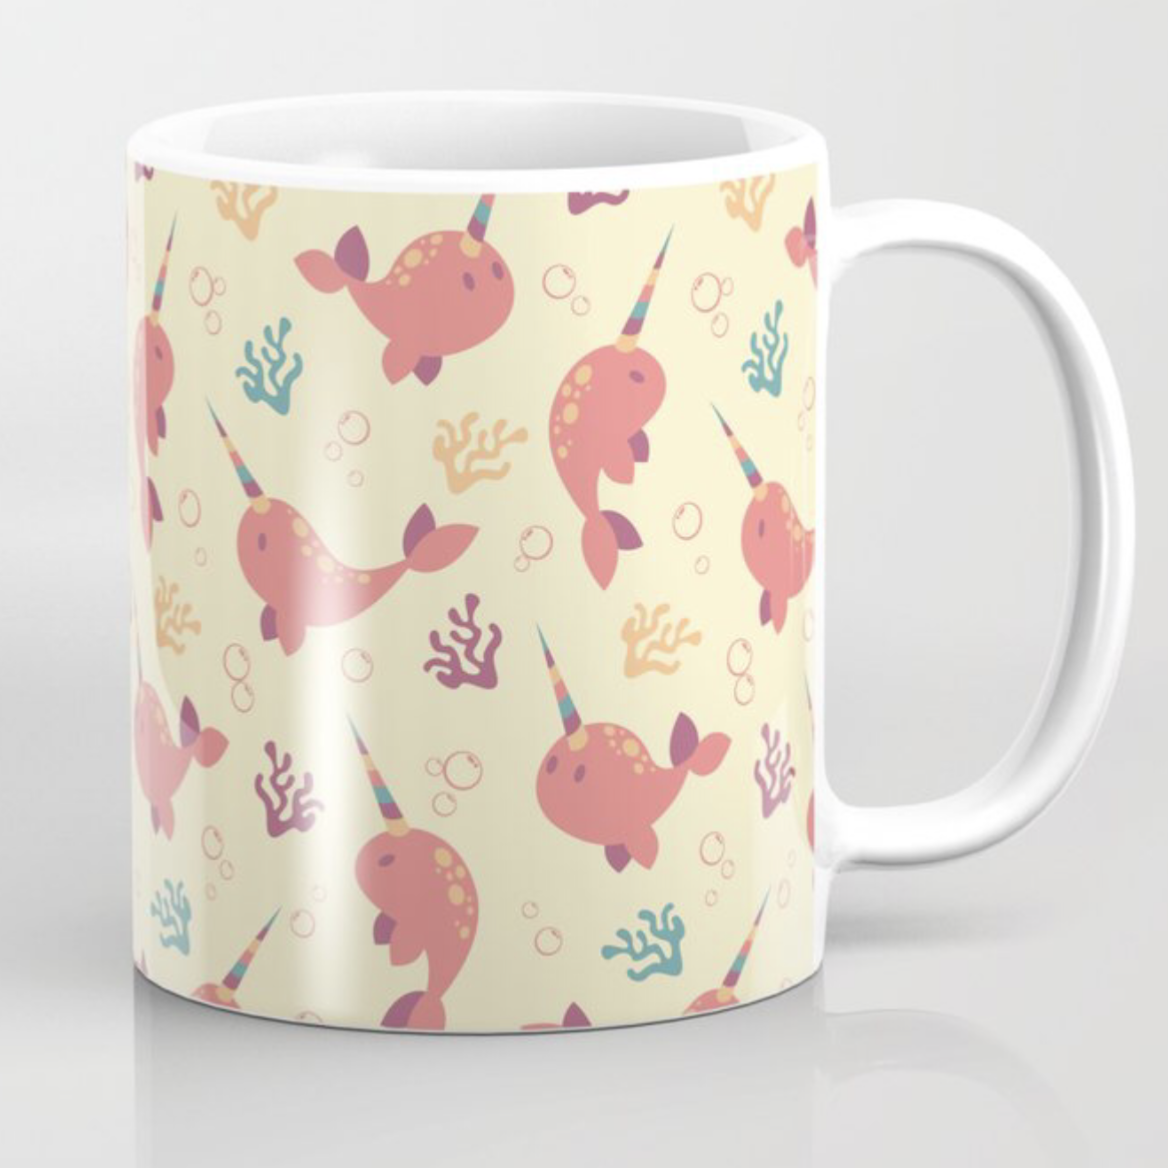 To the Window to the Narwhal coffee mug from Society6